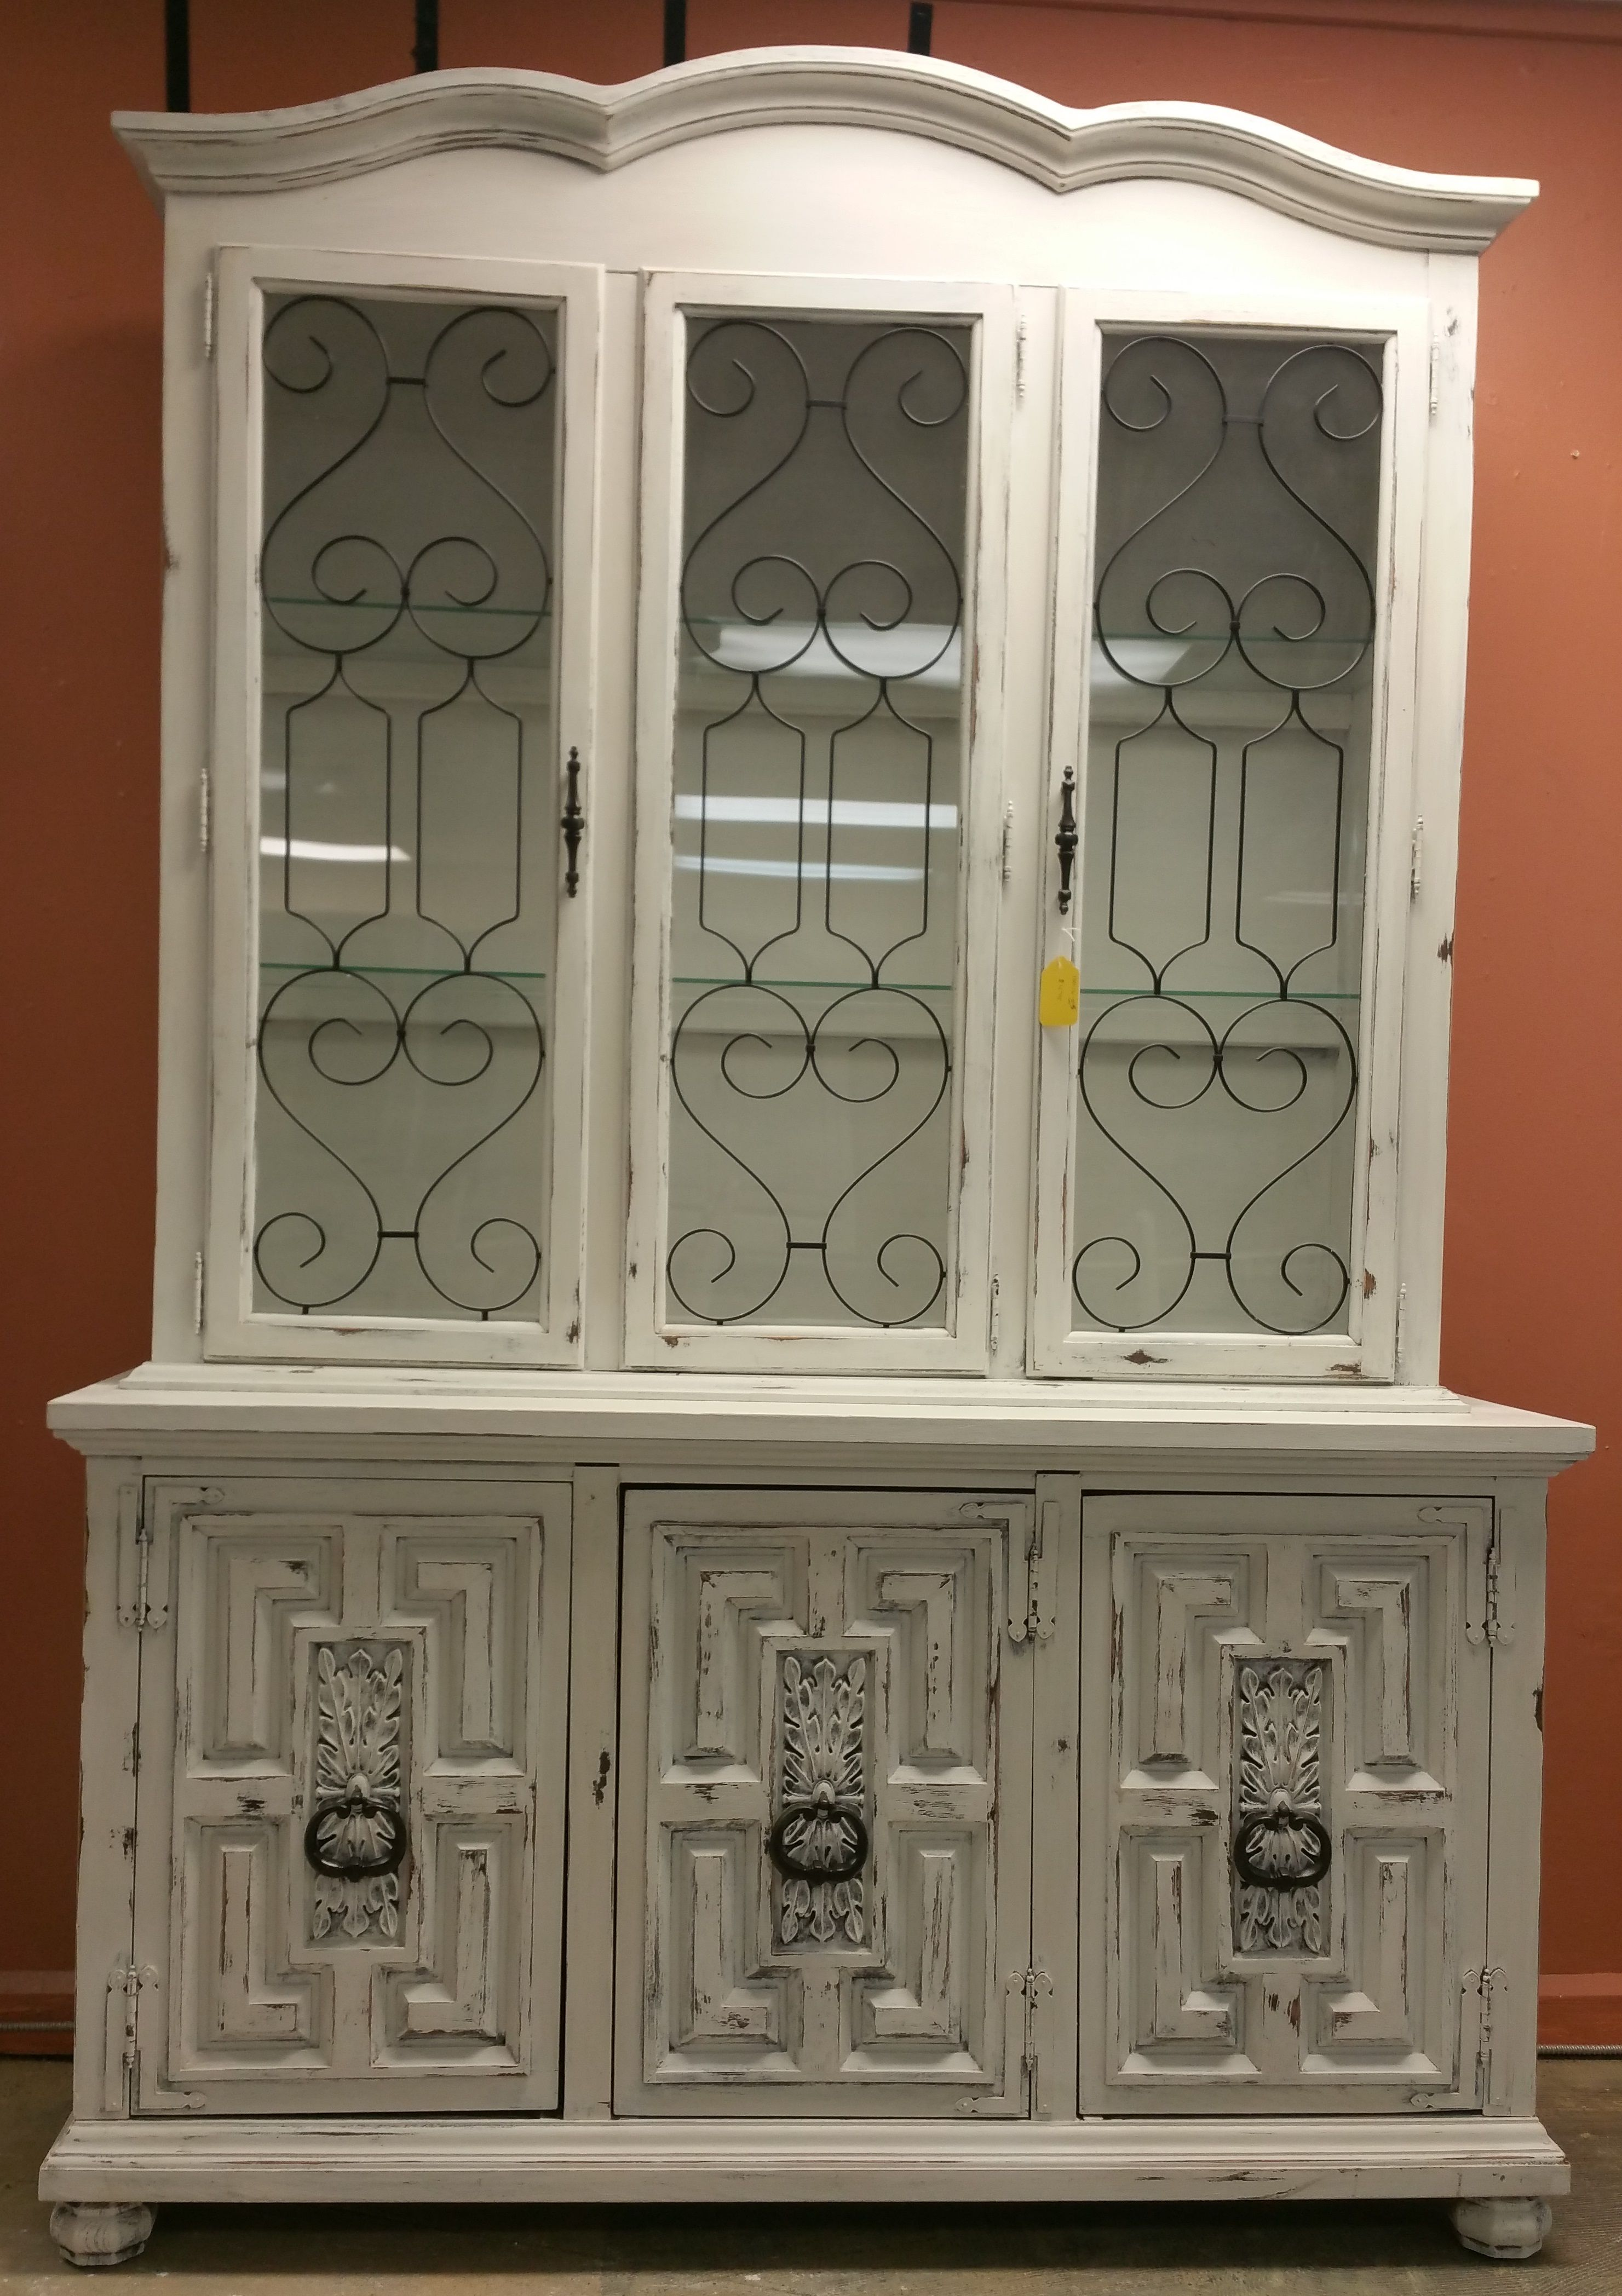 Check Out This GORGEOUS Display Cabinet Its Perfect As A China Hutch For The Dining Room But You Could Pretty Much Anything Wanted In It